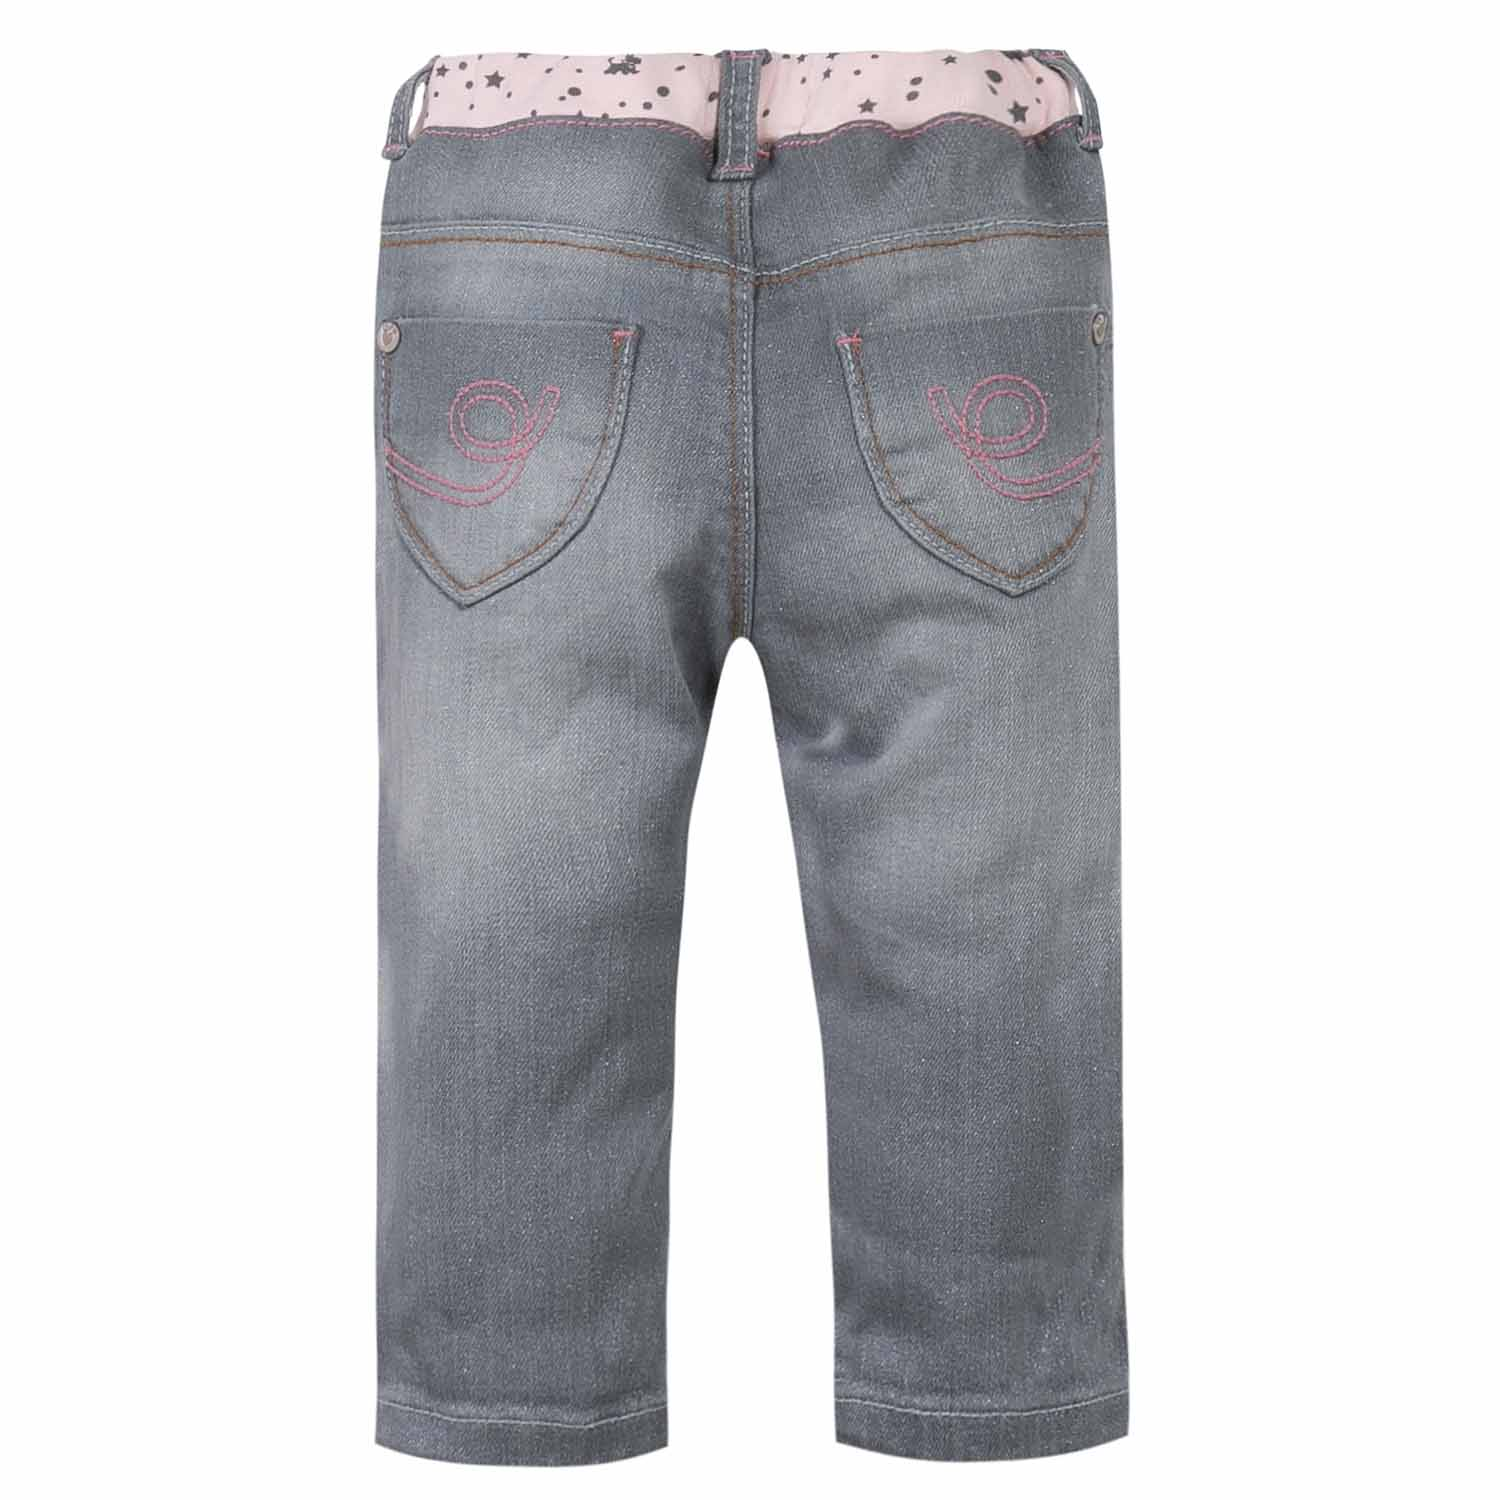 chipie baby jeans hose grau rosa glitzer sterne logo 62 68. Black Bedroom Furniture Sets. Home Design Ideas